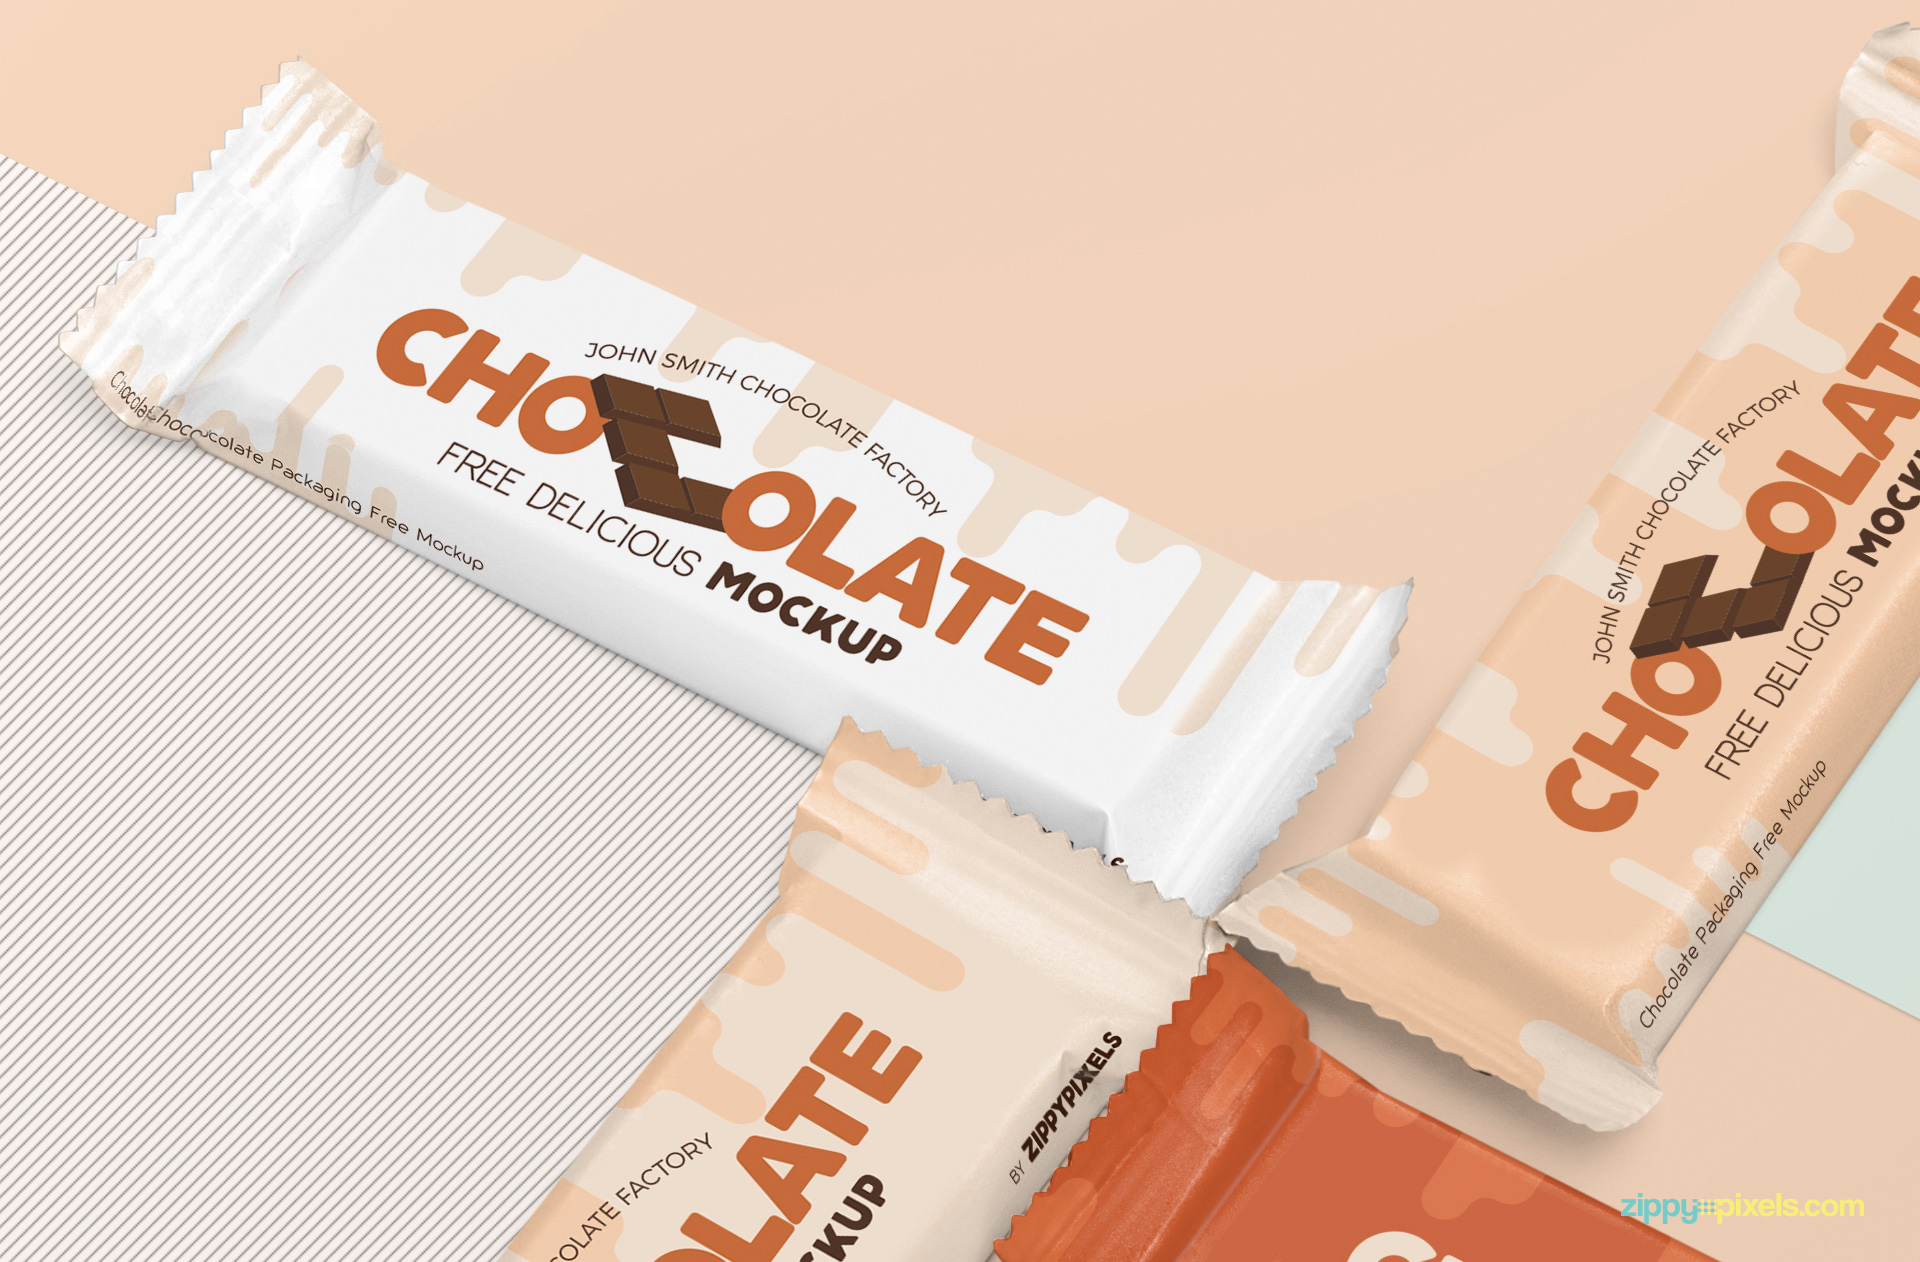 PSD of the chocolate mockup.